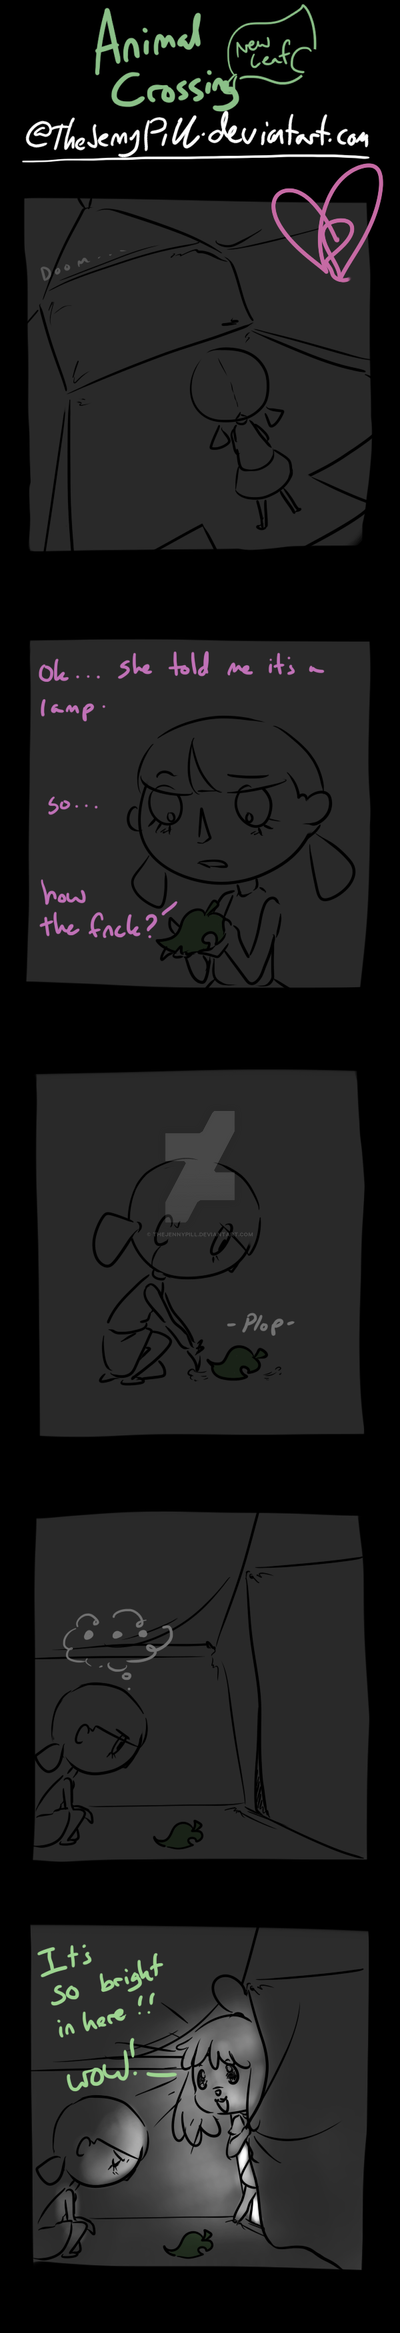 Animal Crossing New Leaf - comic 7 by TheJennyPill